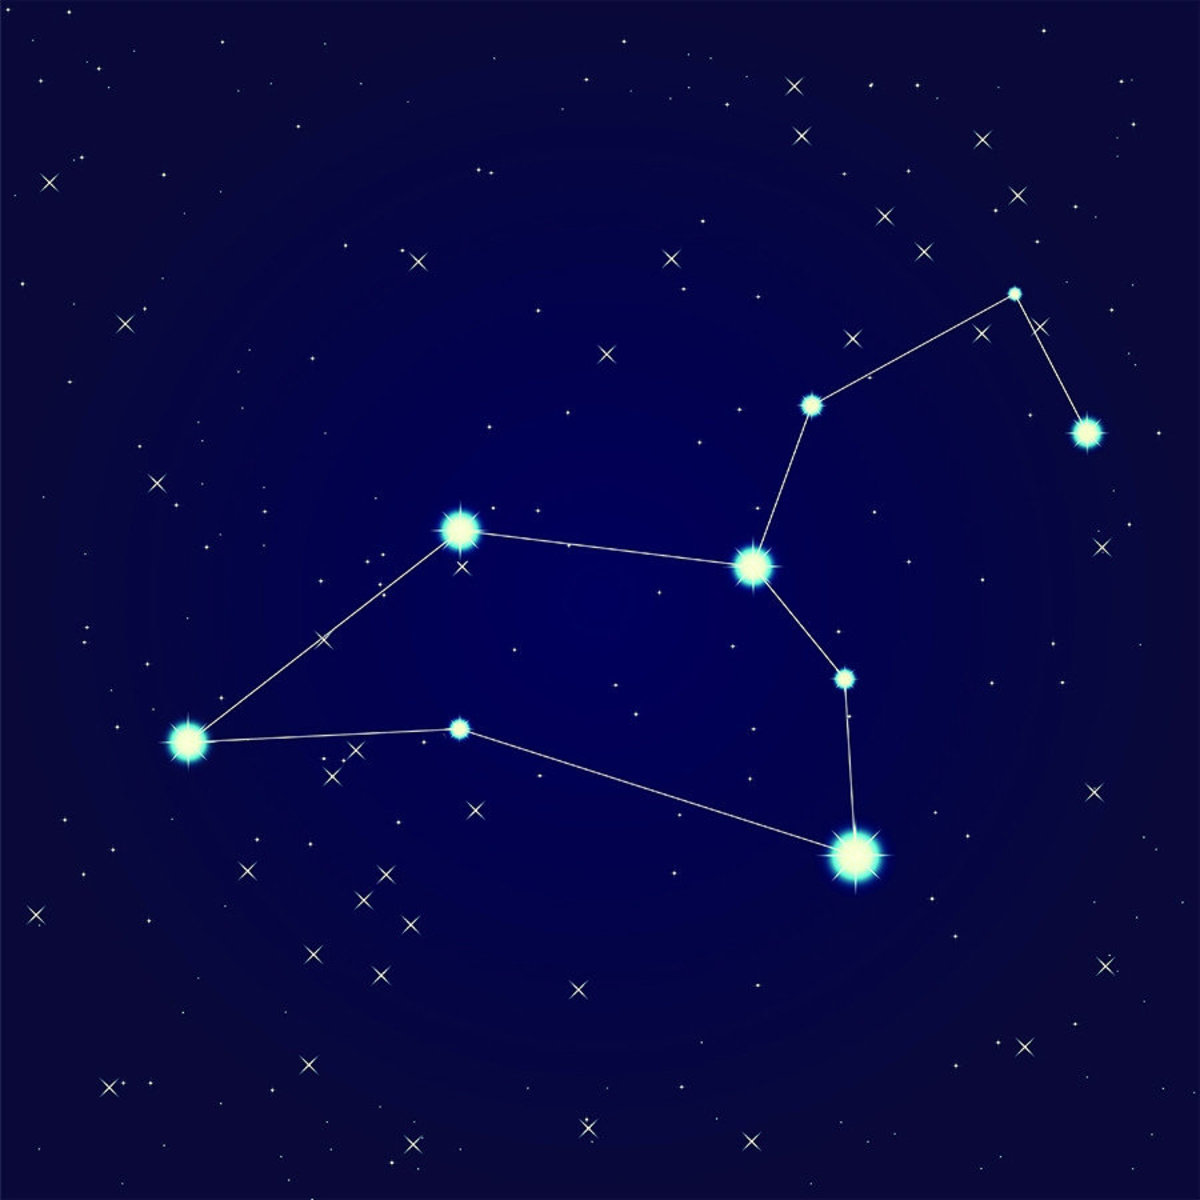 Cancer Constellation Wall Mural Sample